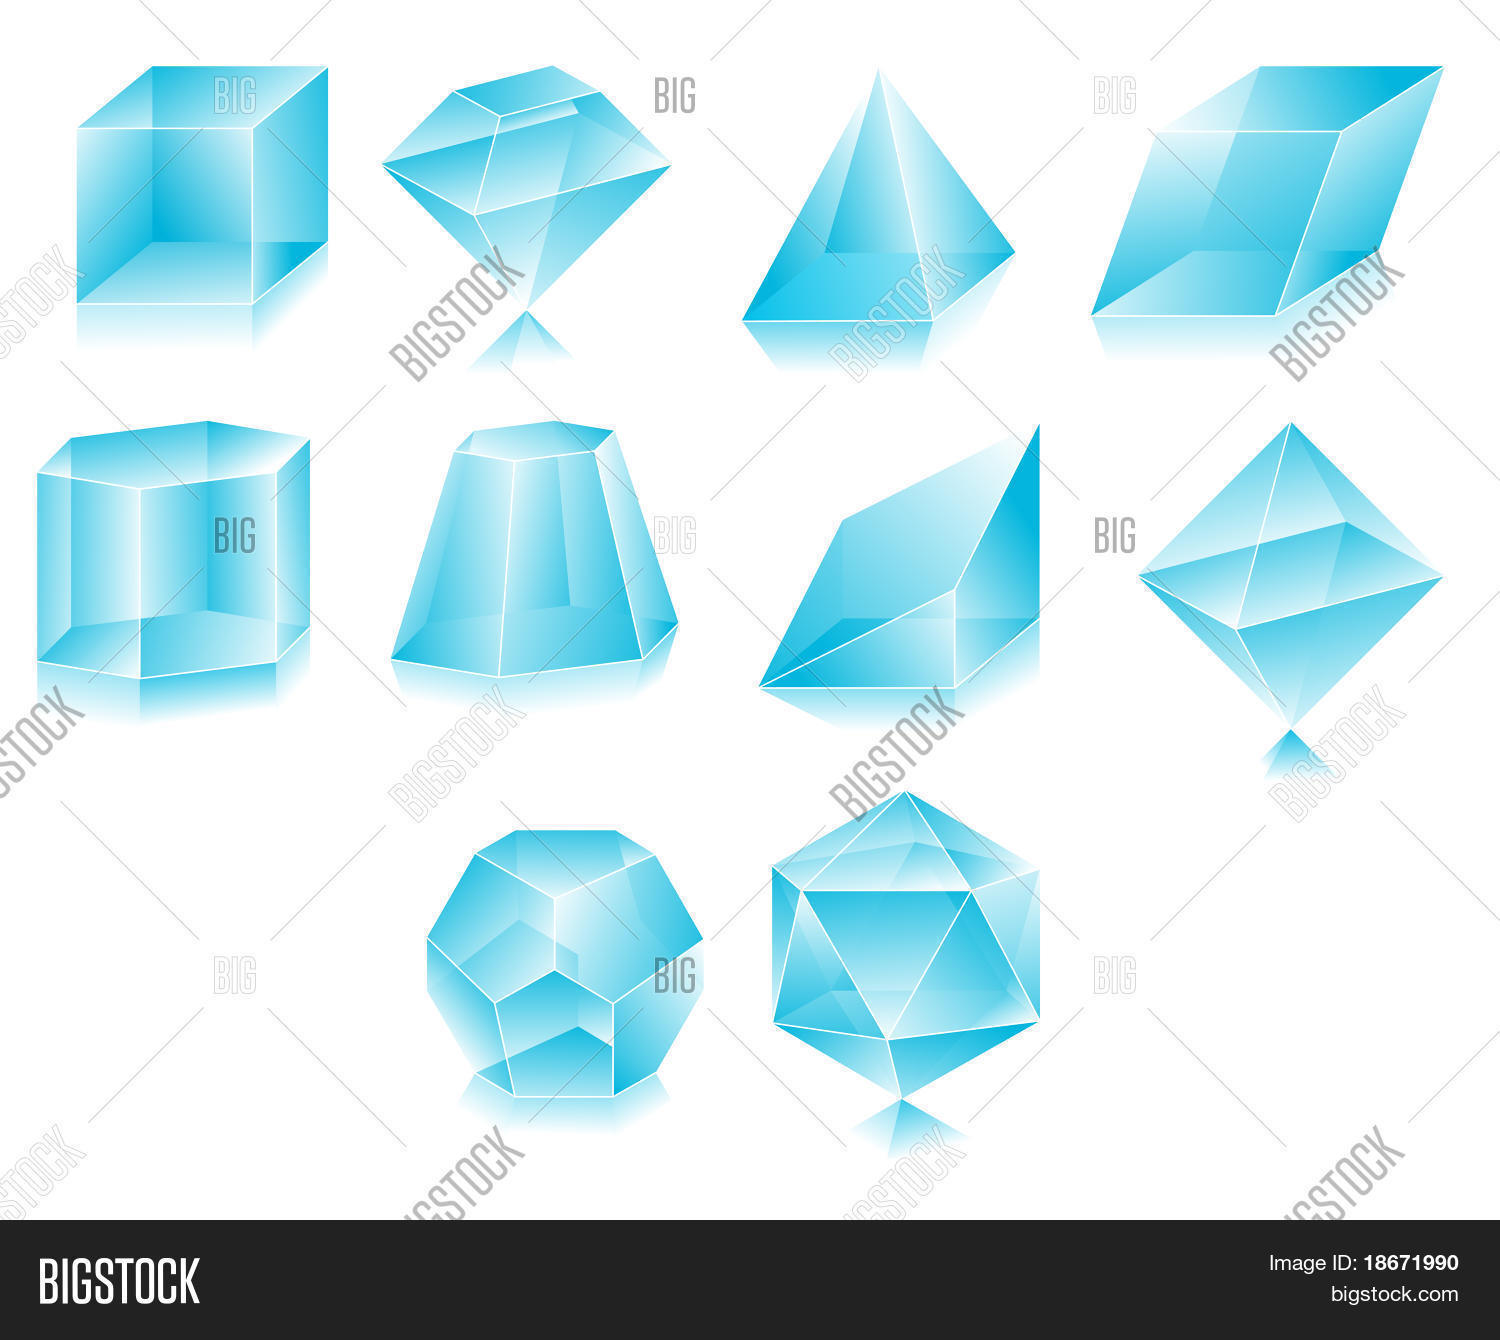 Blank Translucent 3d Shapes Design Vector Photo Bigstock